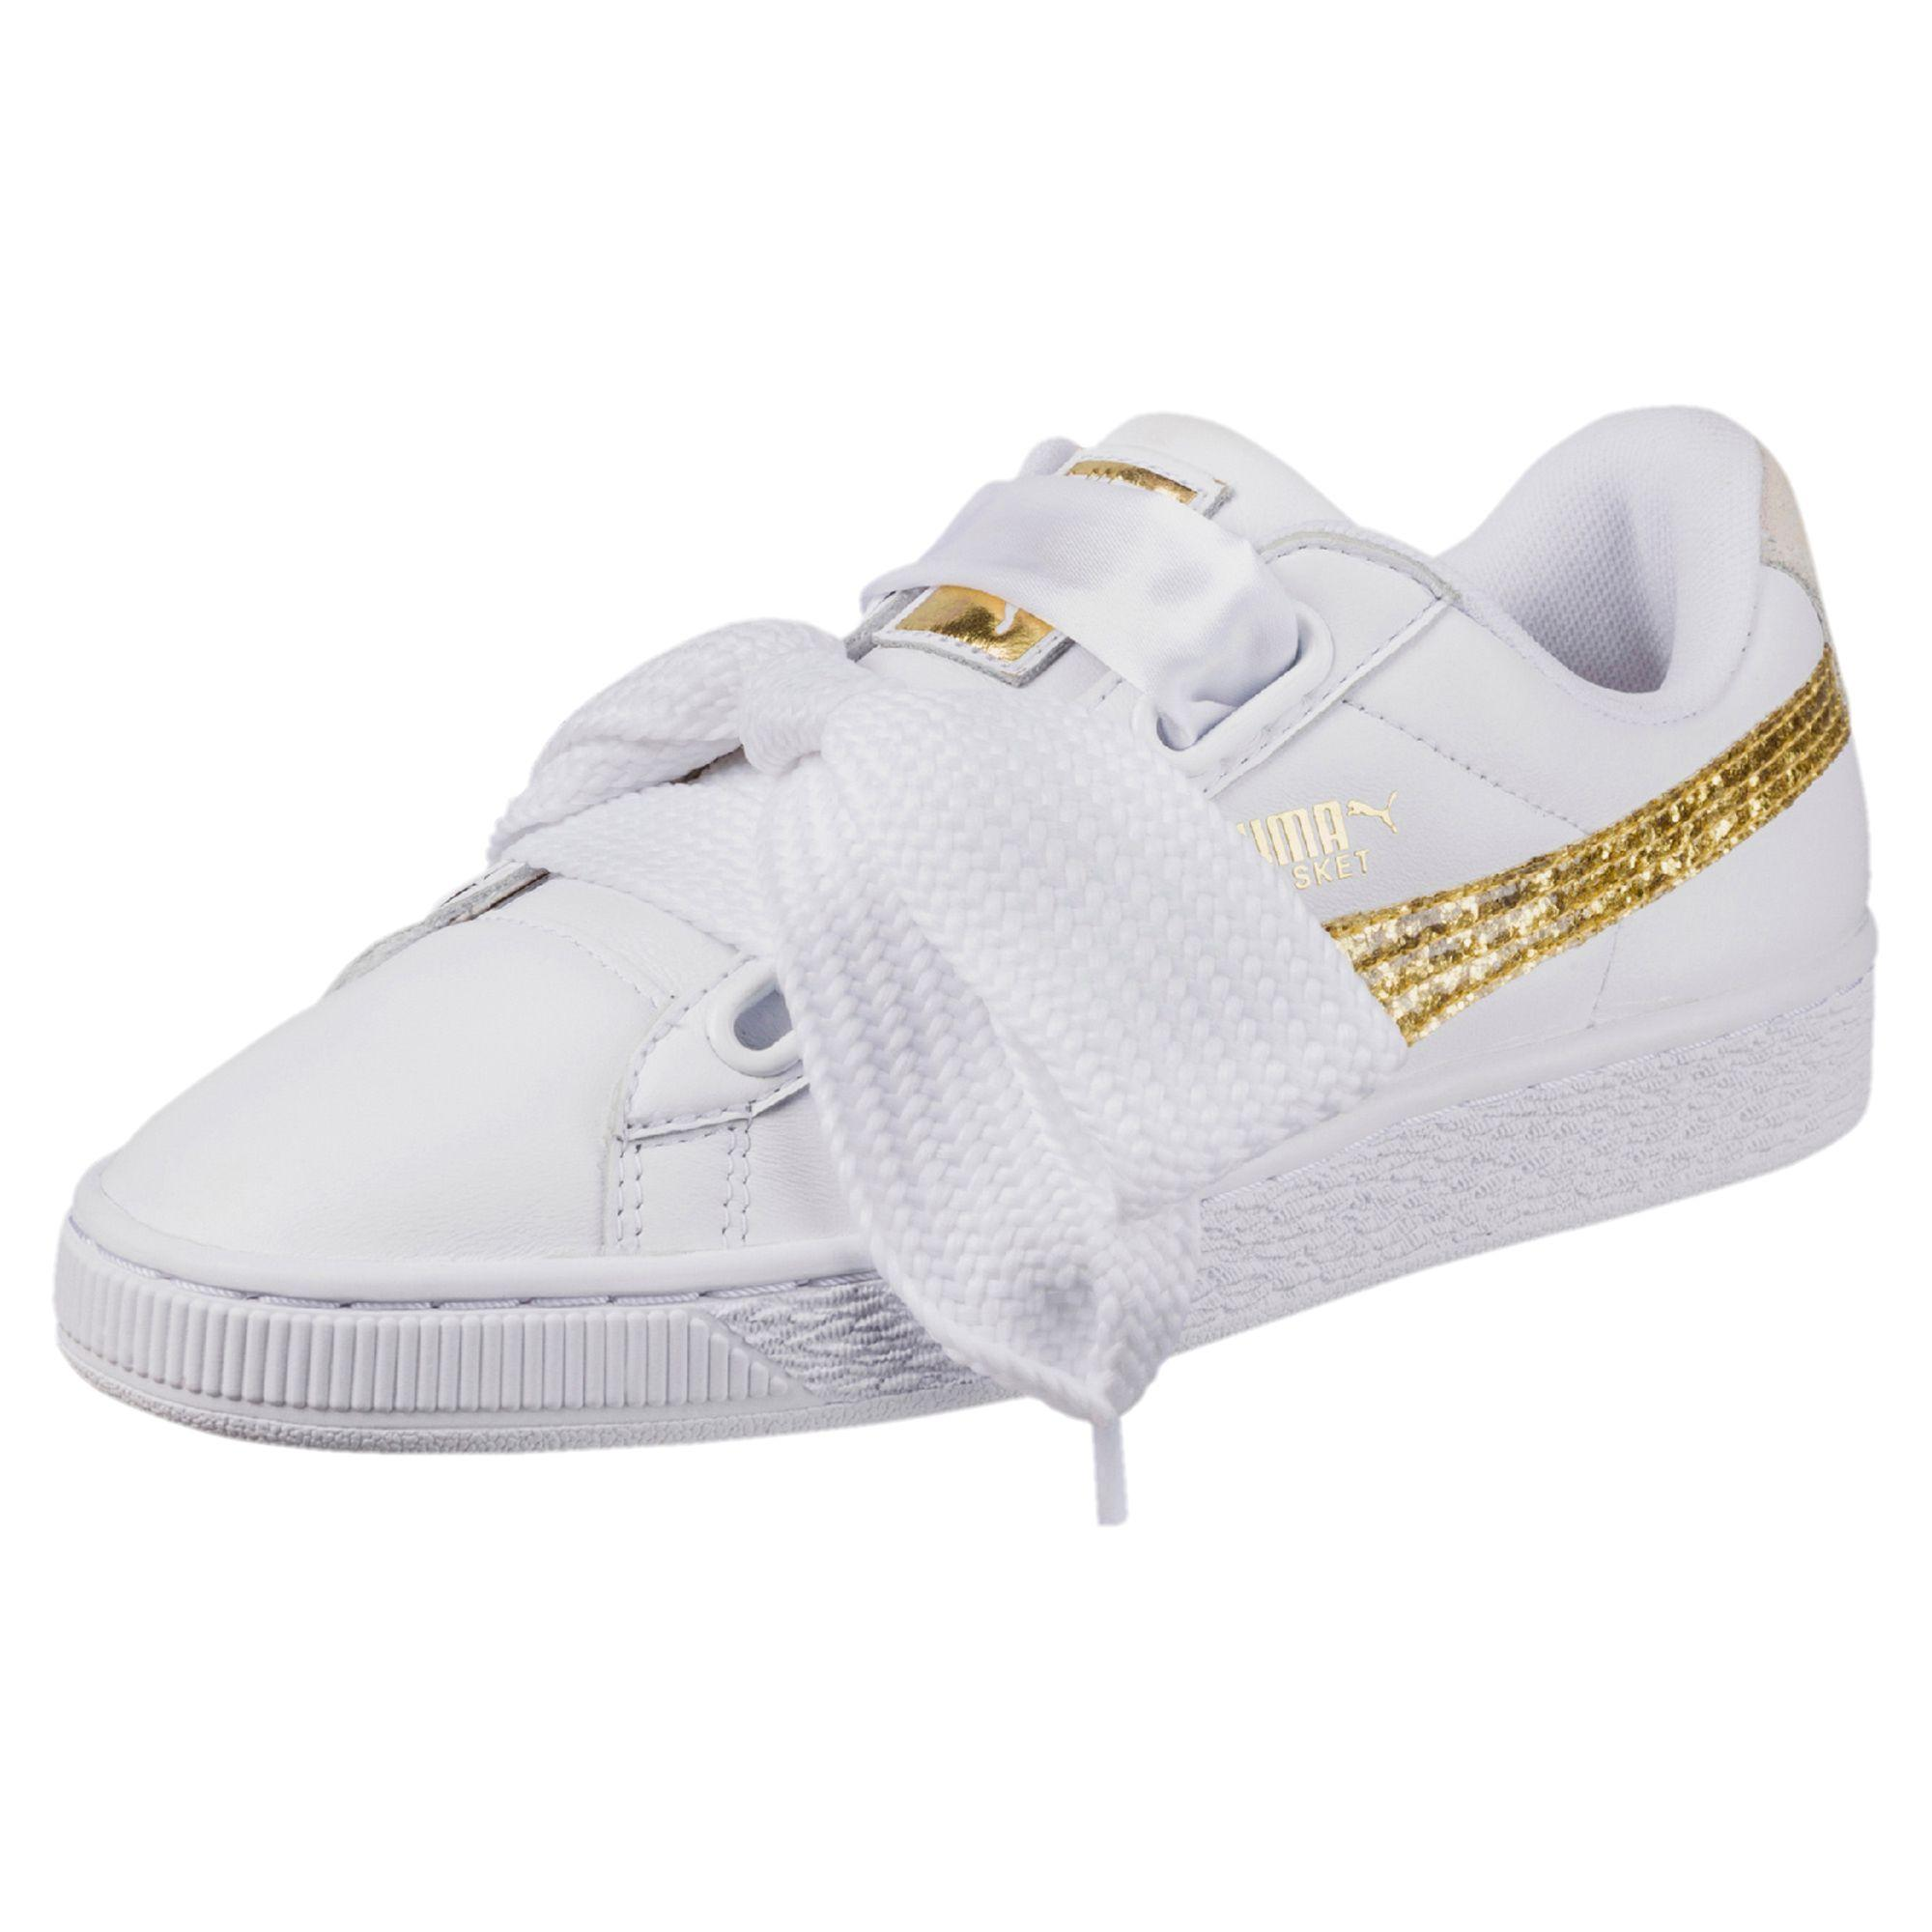 7223a4866a Puma Shoes Basket Heart Glitter Woman